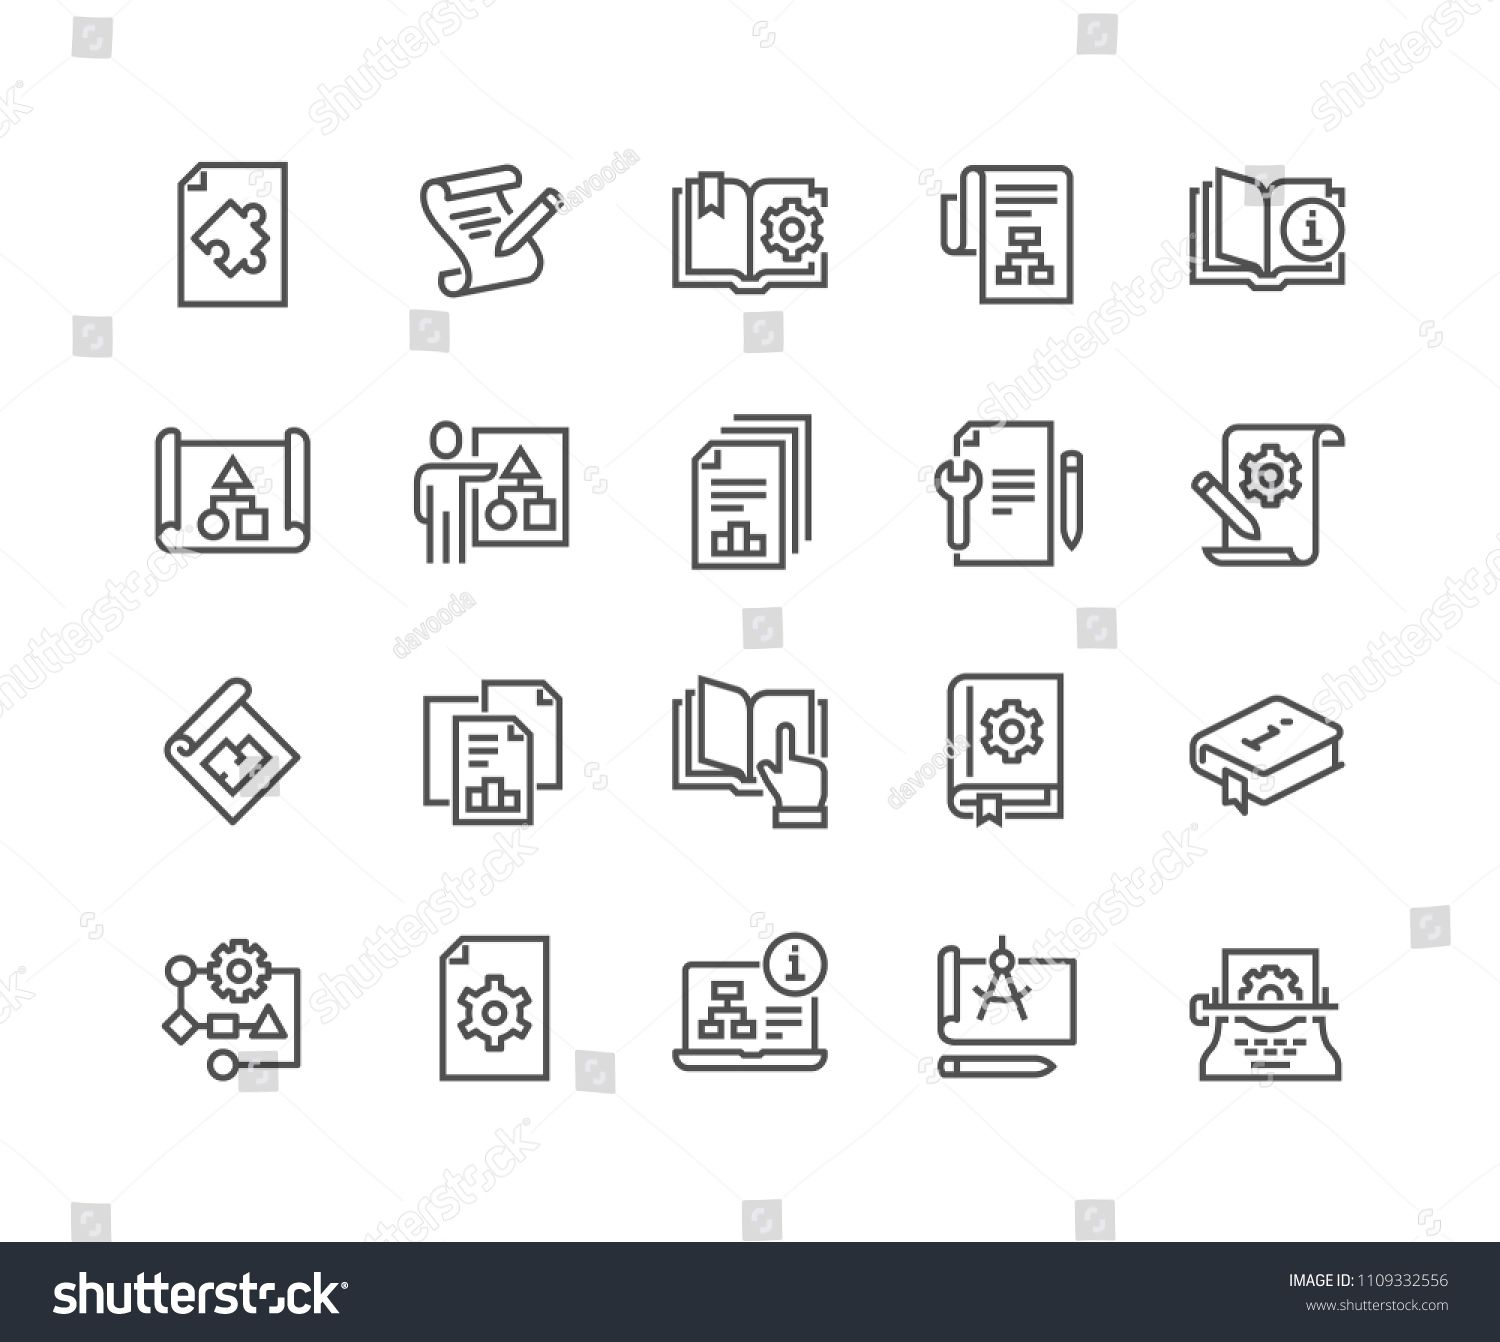 Simple Set Of Technical Documentation Related Vector Line Icons Ncontains Such Icons As Plan Blueprint Manual Line Icon Technical Documentation Blueprints